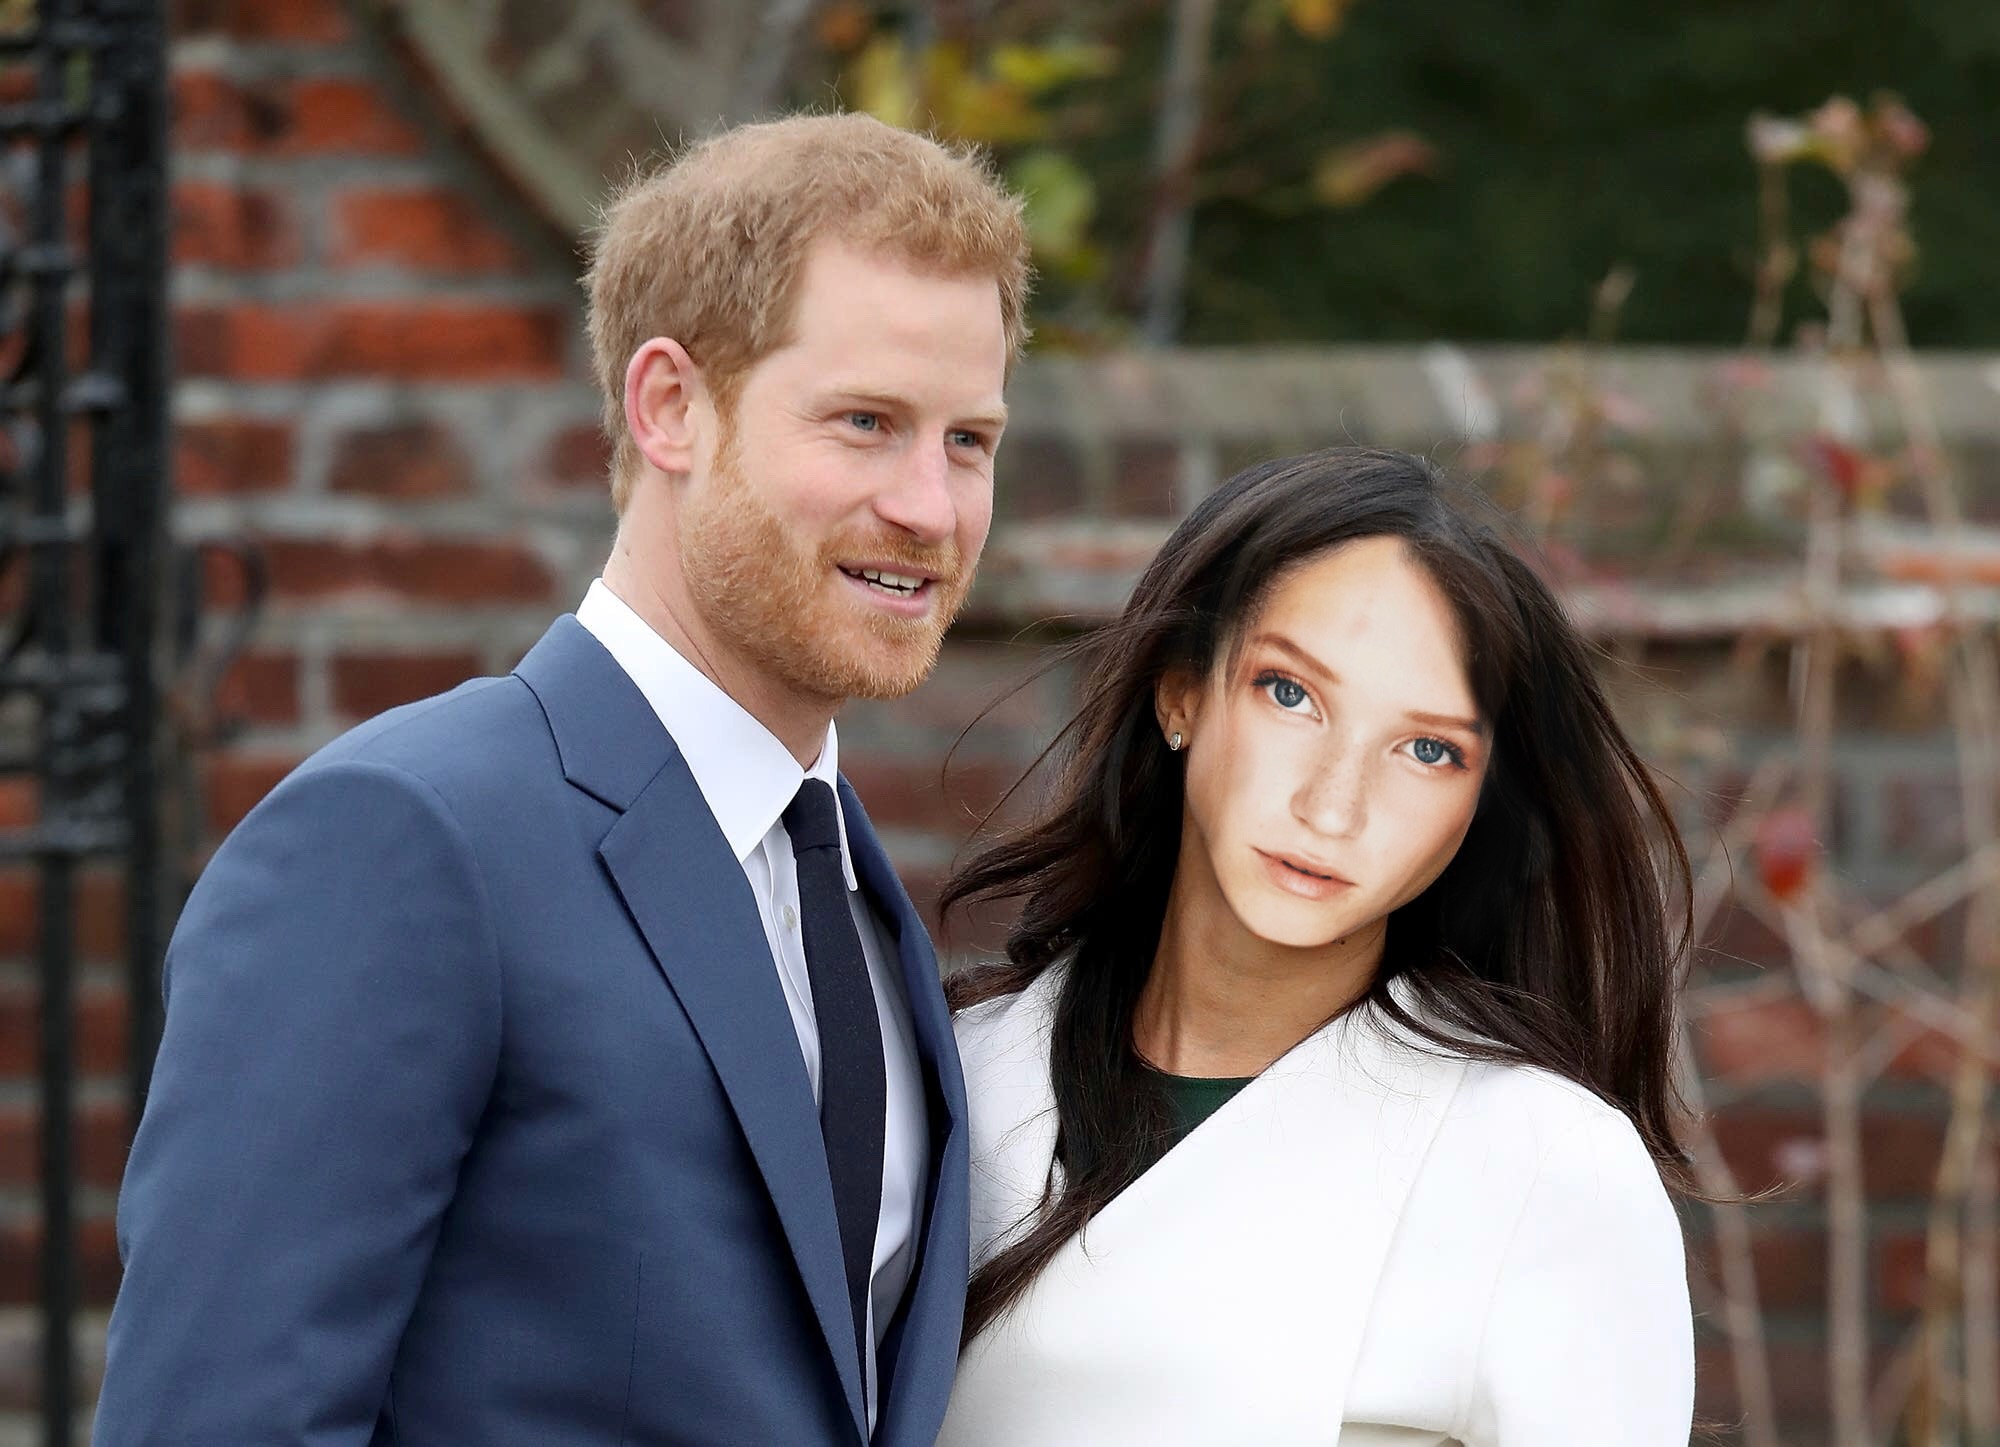 #freetoedit #royalwedding